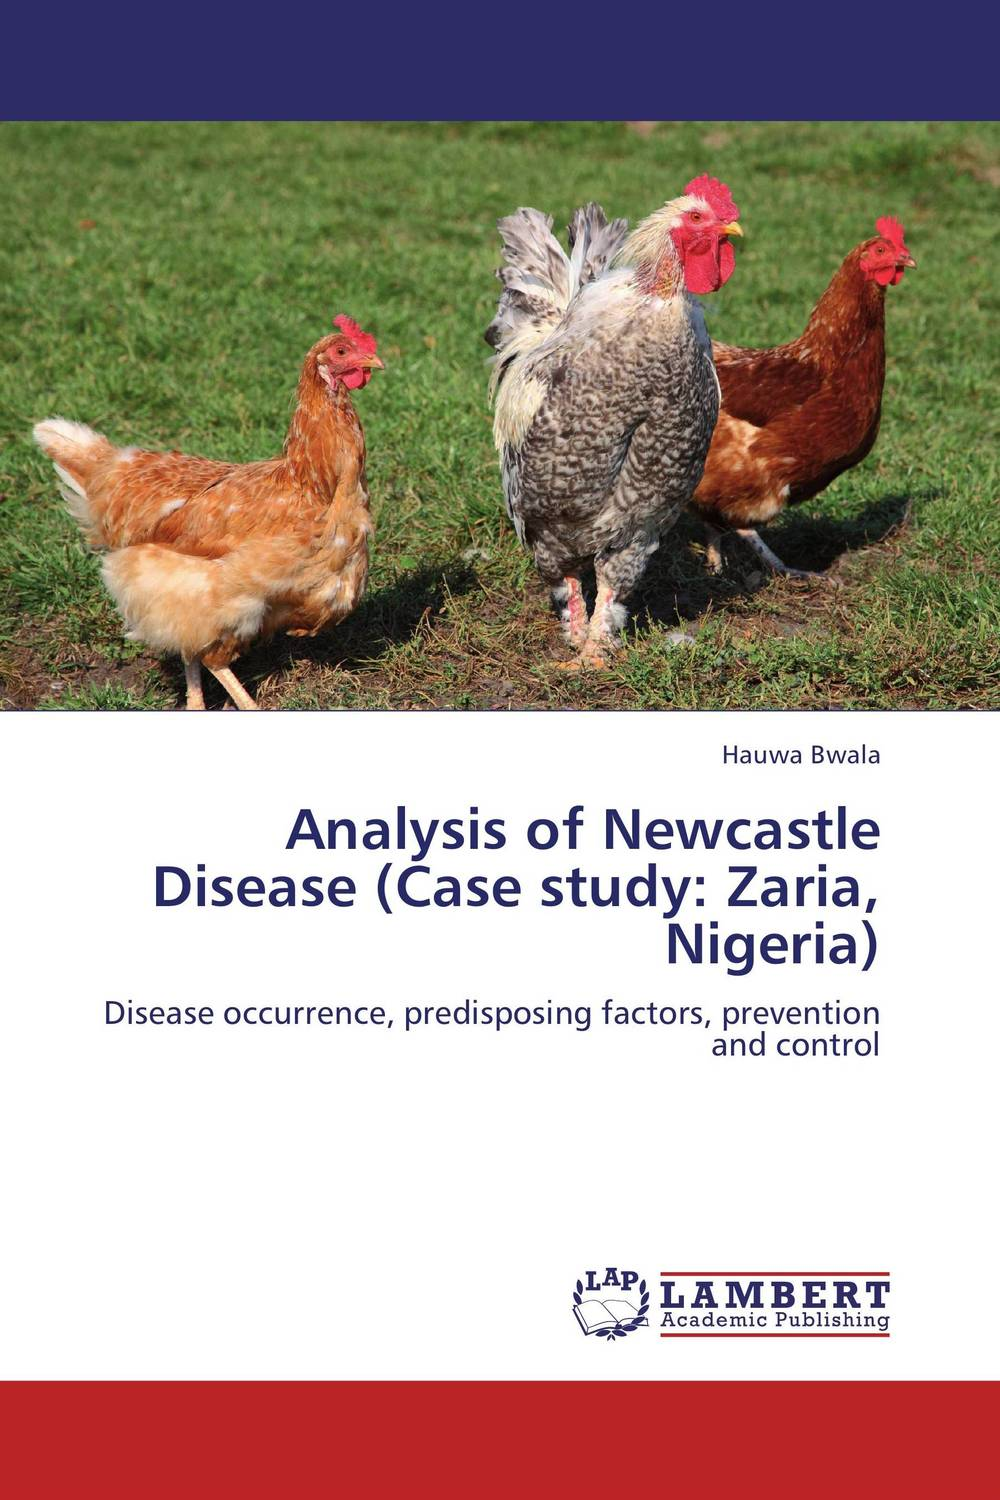 Analysis of Newcastle Disease (Case study: Zaria, Nigeria)